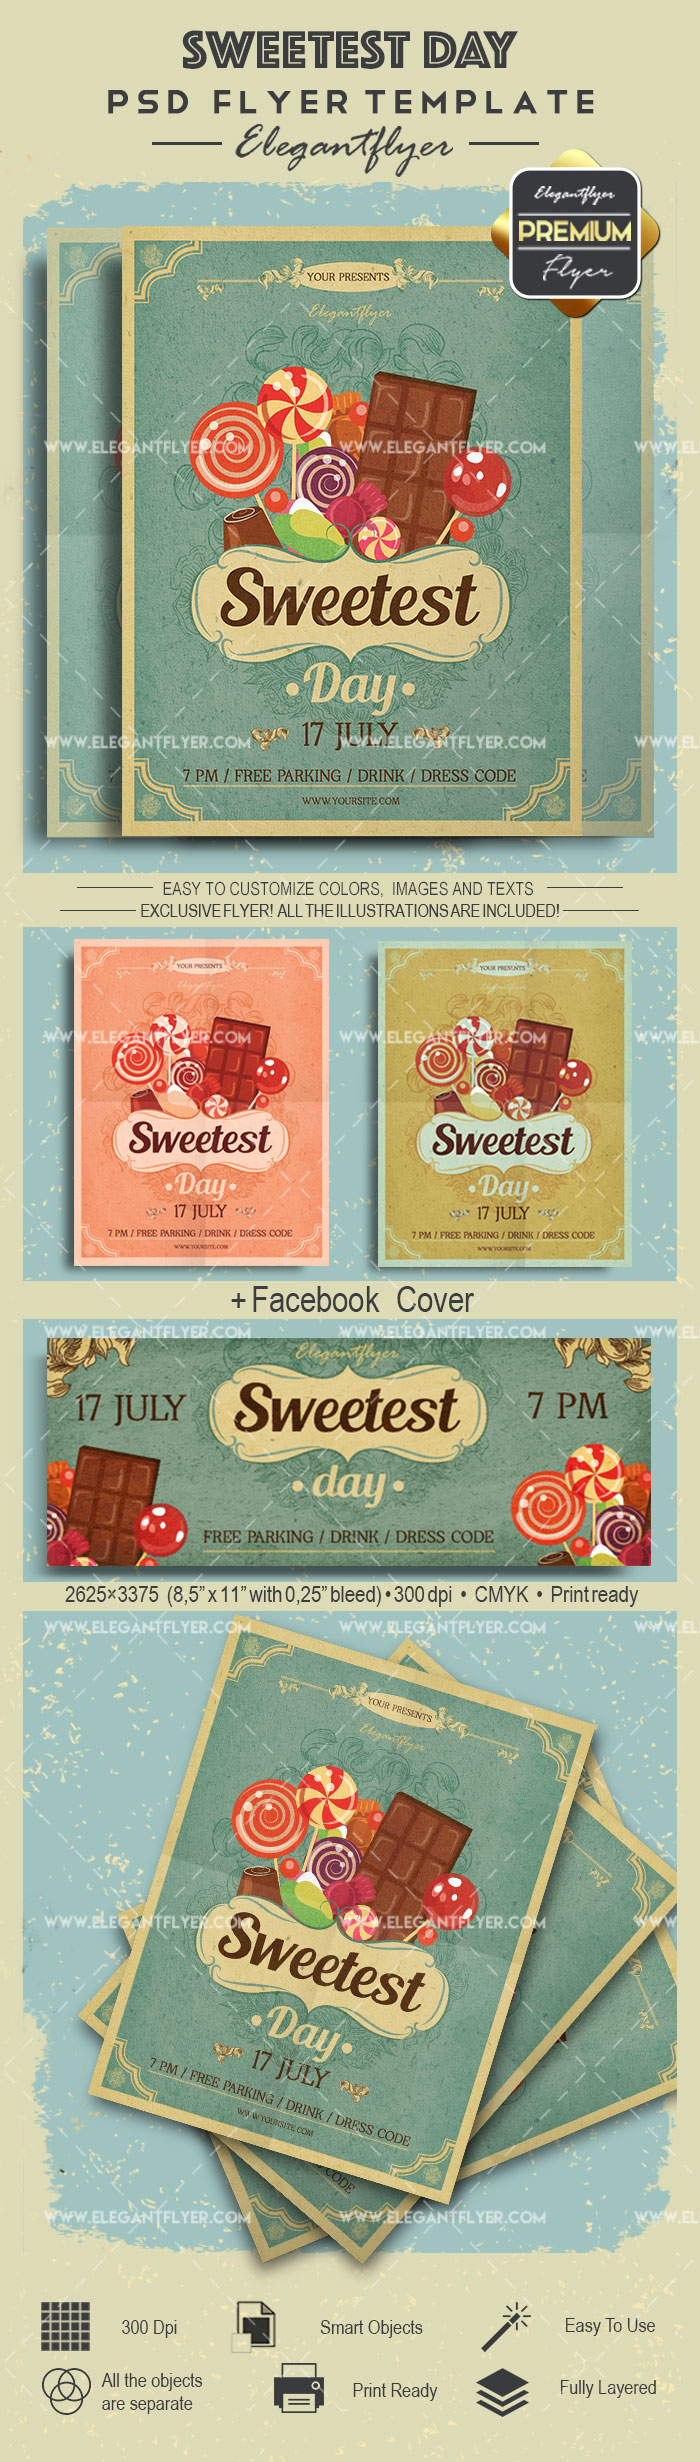 Sweetest Day- Flyer PSD Template